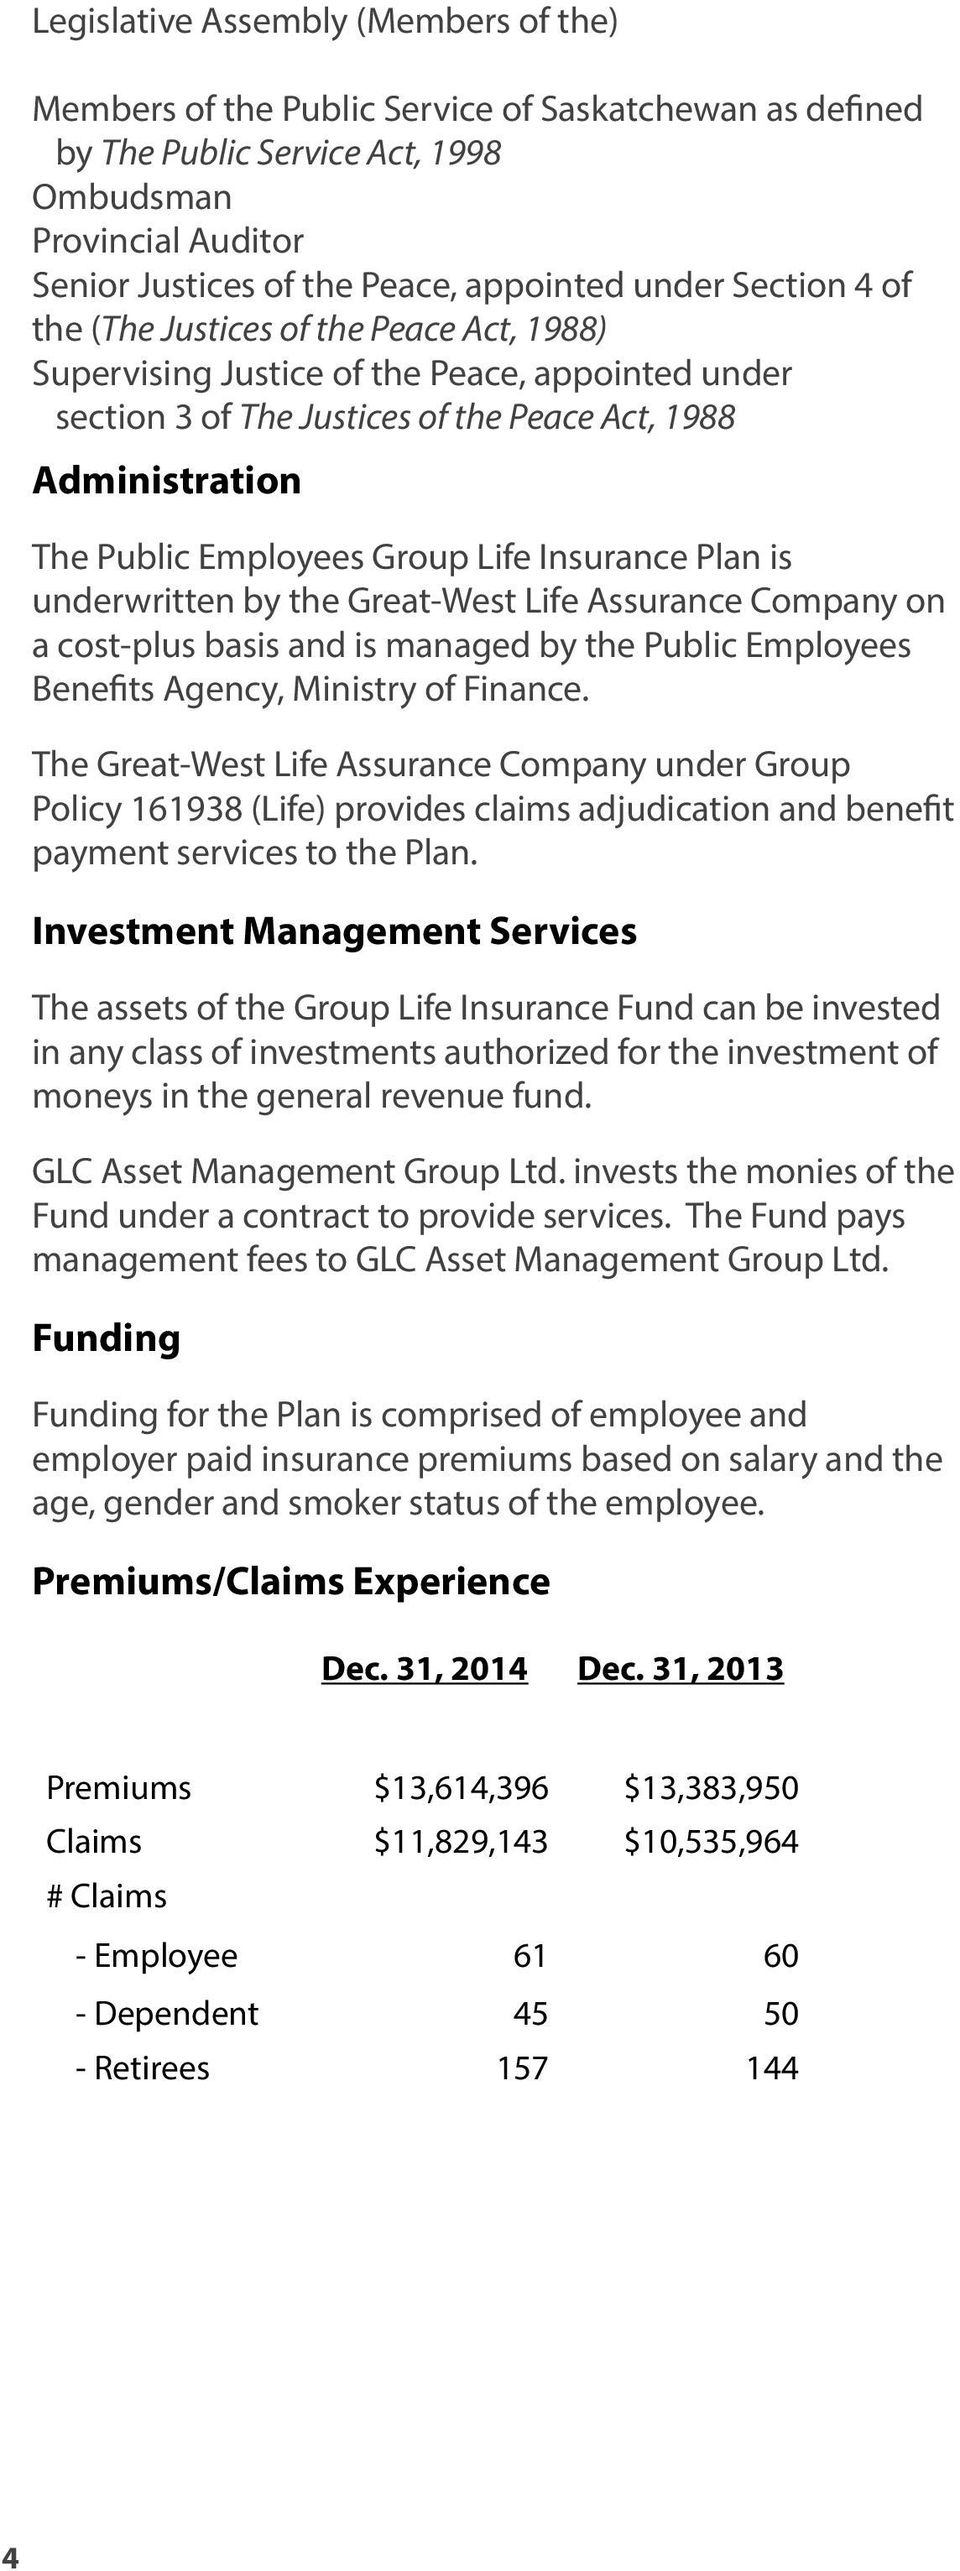 Group Life Insurance Plan is underwritten by the Great-West Life Assurance Company on a cost-plus basis and is managed by the Public Employees Benefits Agency, Ministry of Finance.